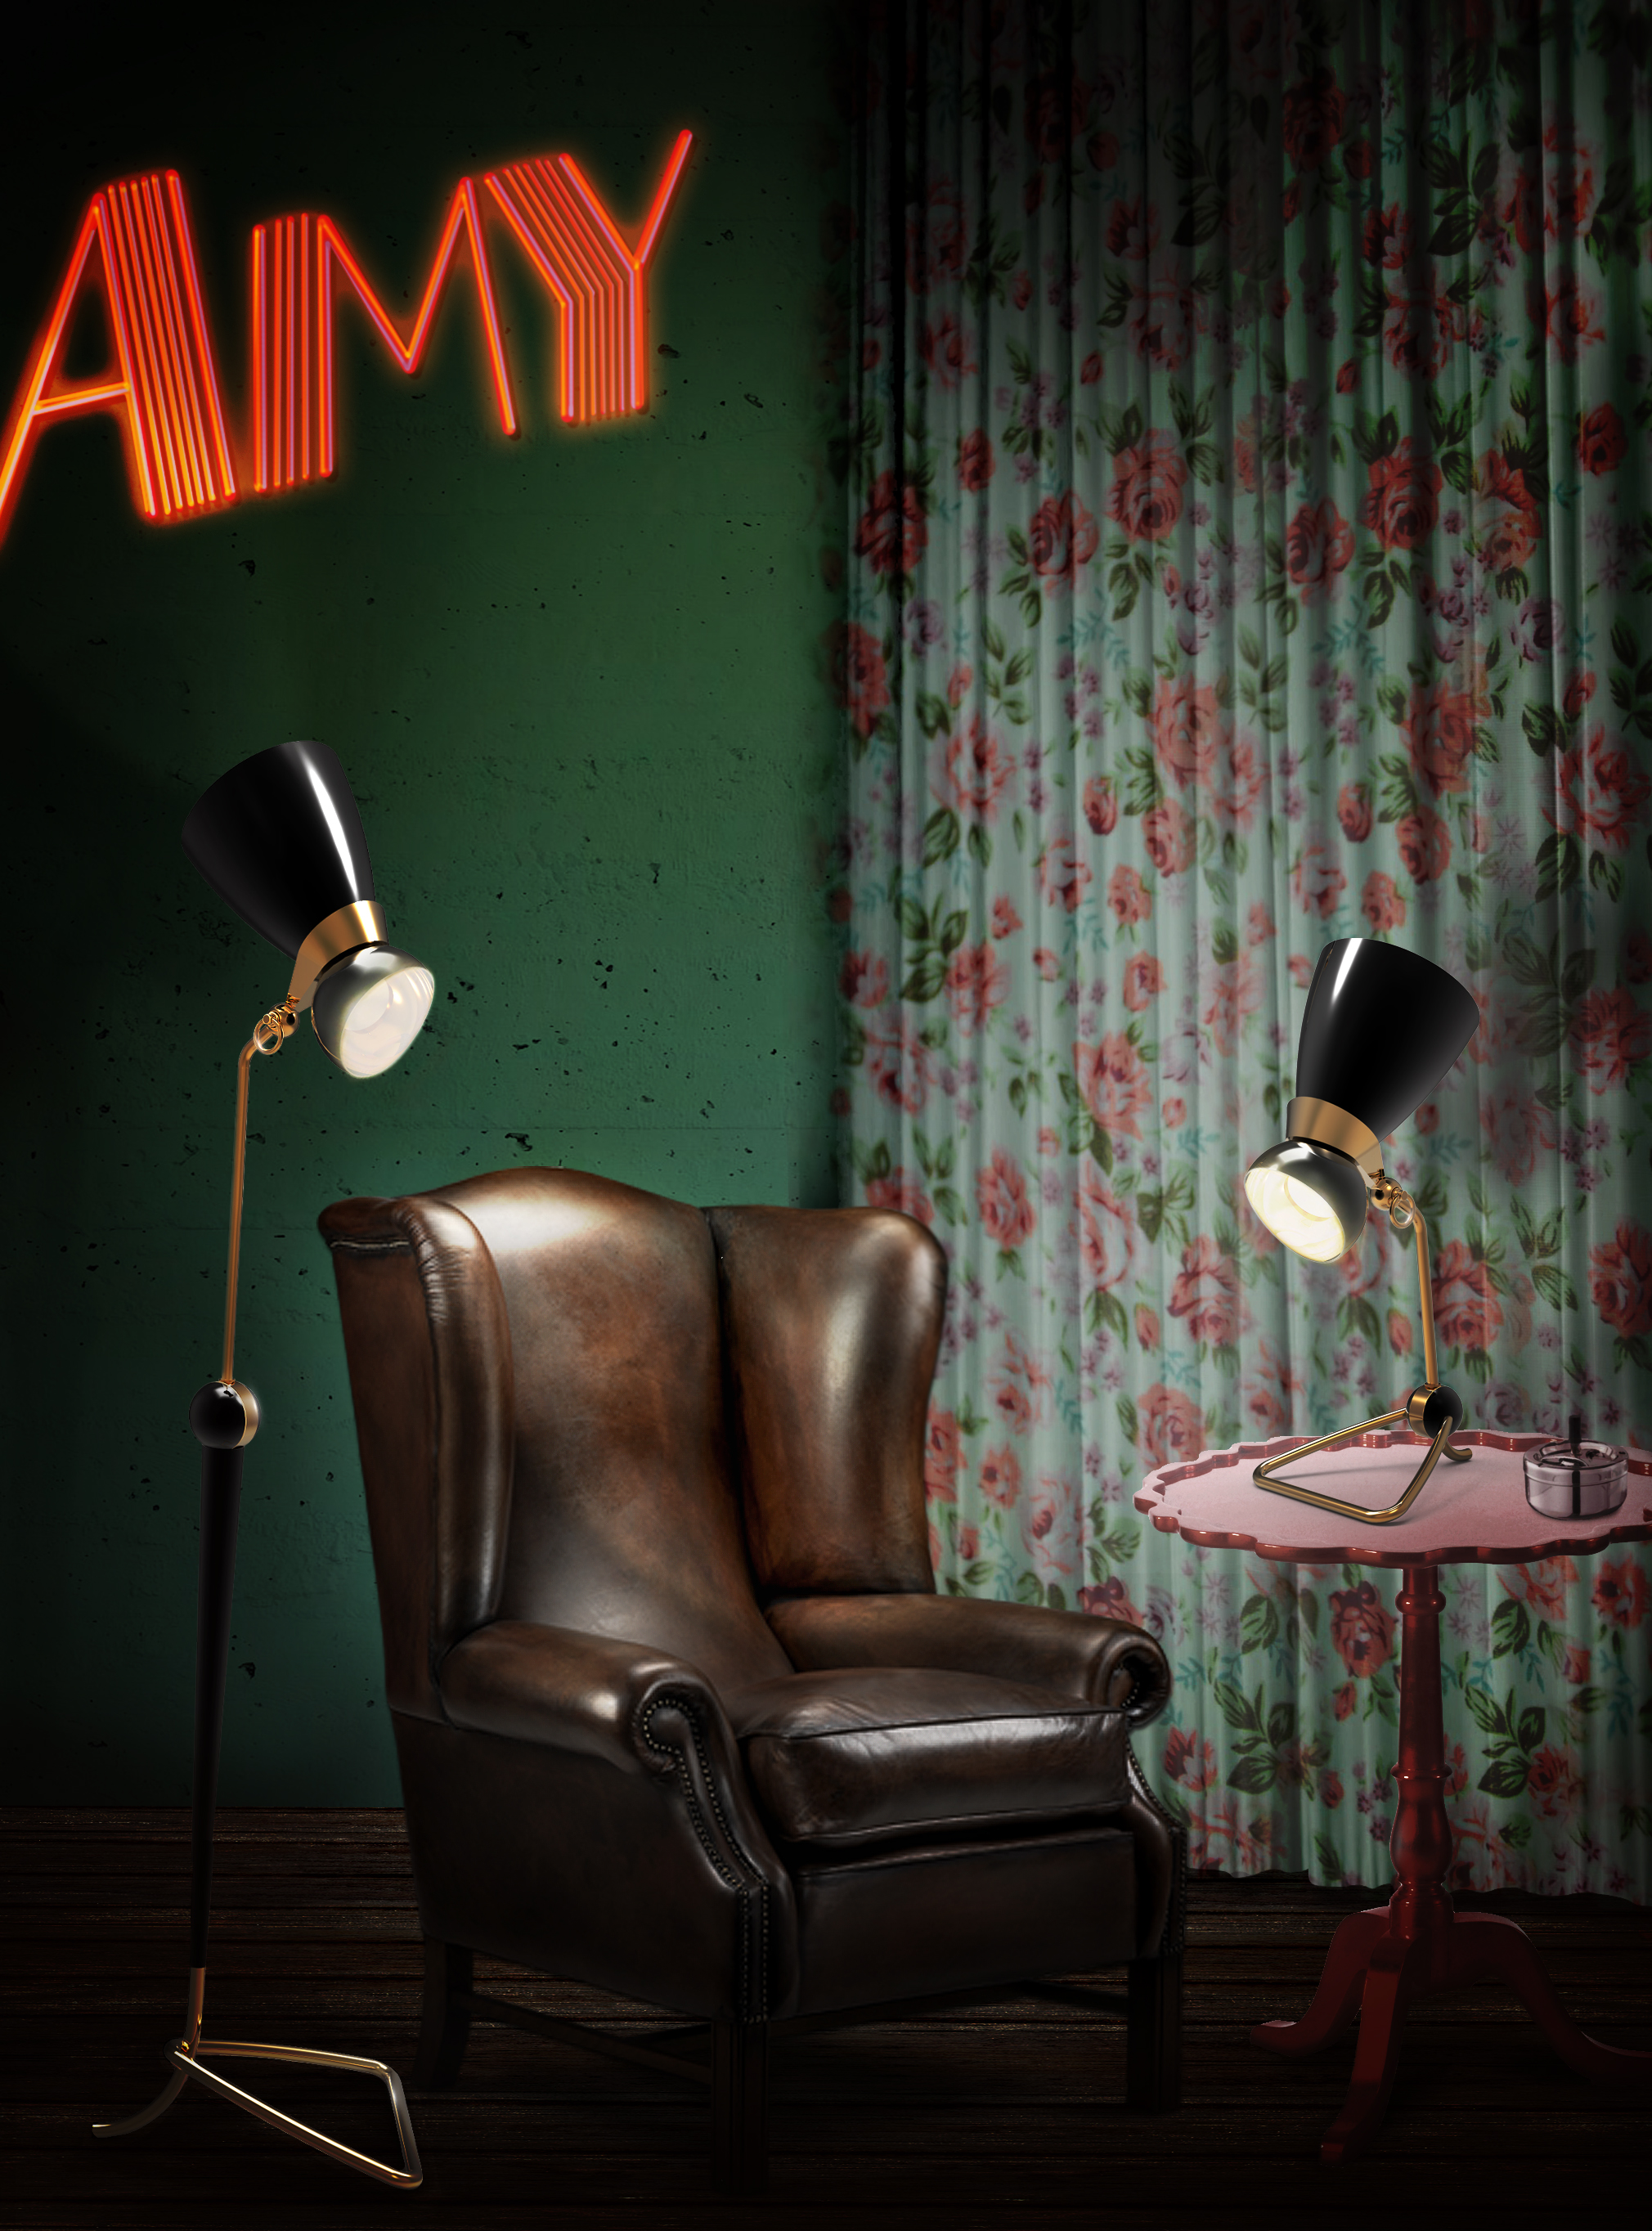 Bright Ideas A Floor Lamp Inspired in A Rock Star 1 vintage floor lamp Bright Ideas: A Vintage Floor Lamp Inspired in A Rock Star Bright Ideas A Vintage Floor Lamp Inspired in A Rock Star 5